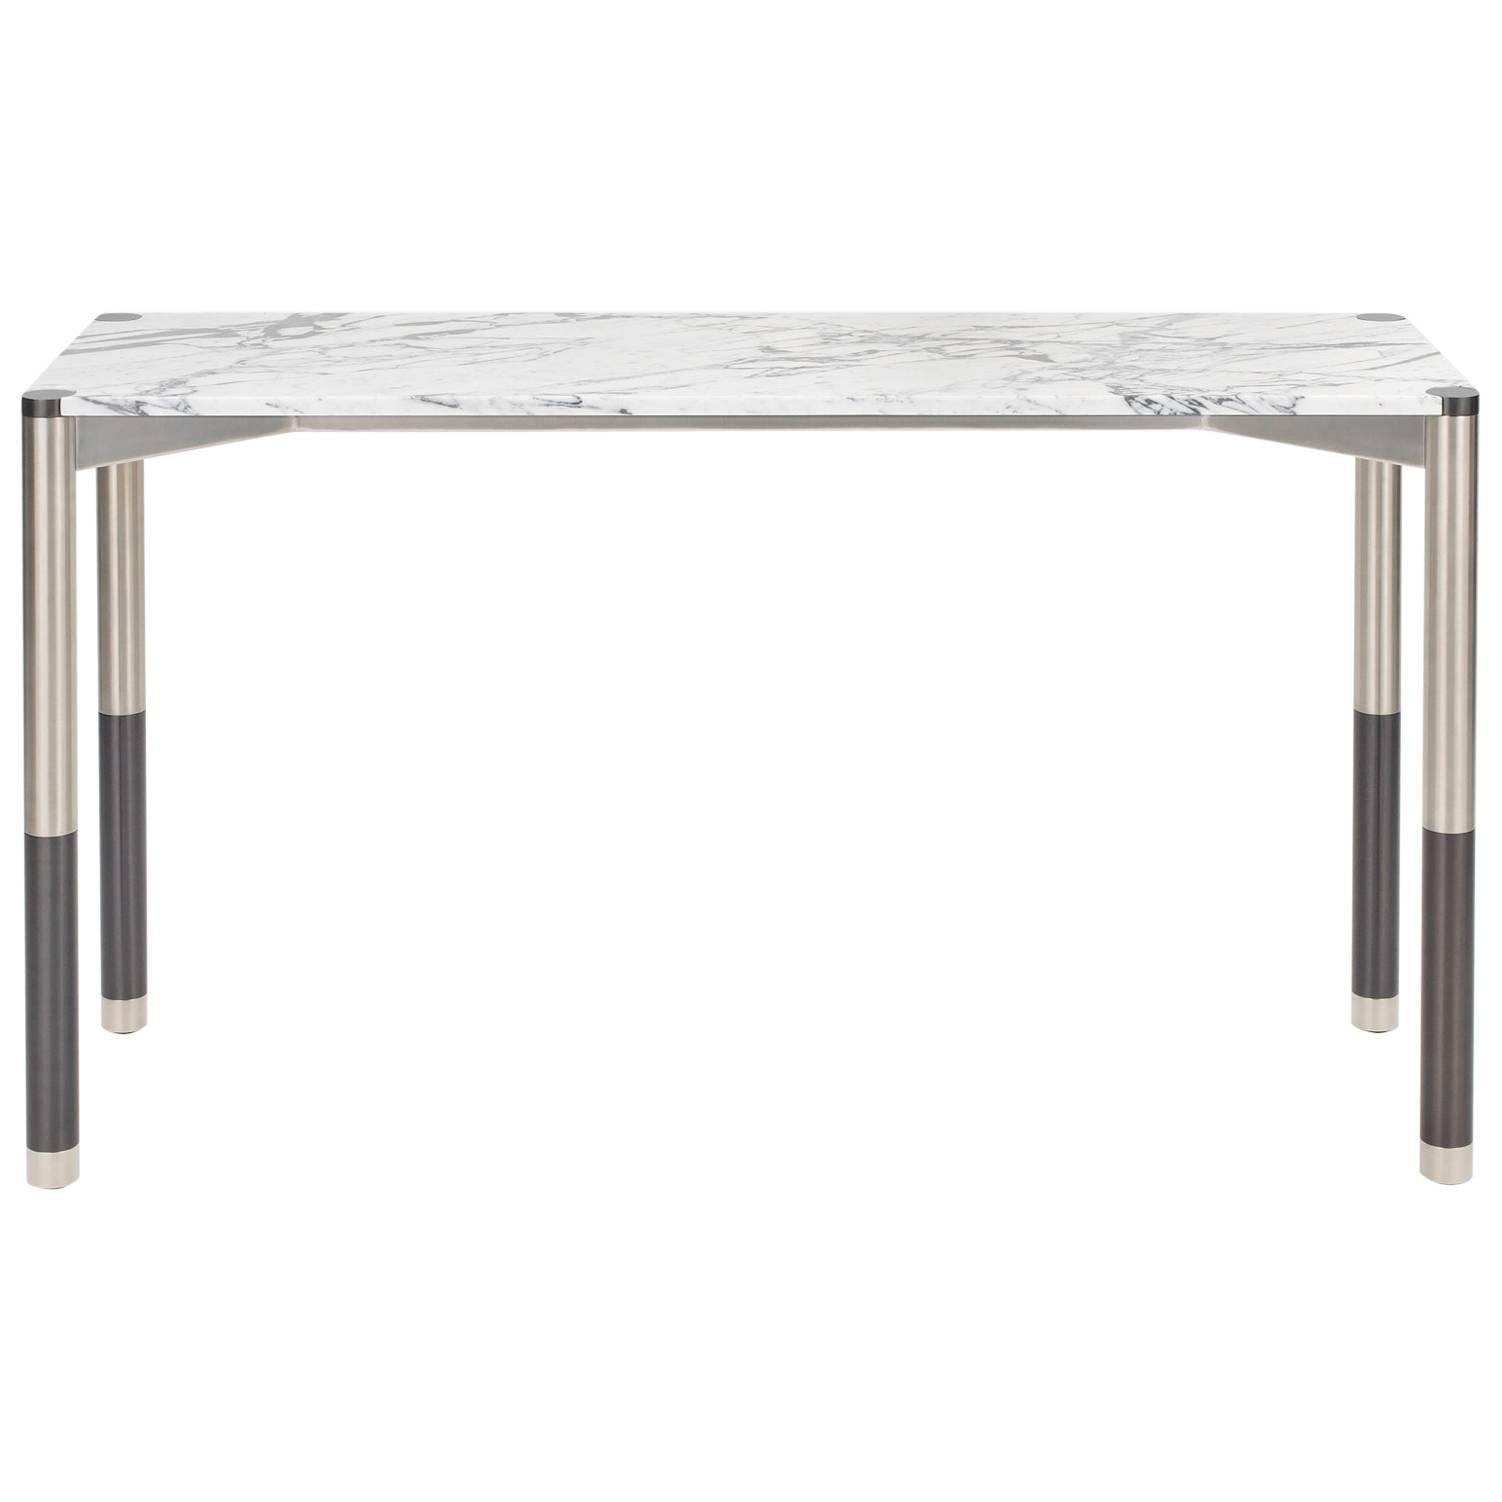 Nova Console Table with Marble Top by AVRAM RUSU STUDIO